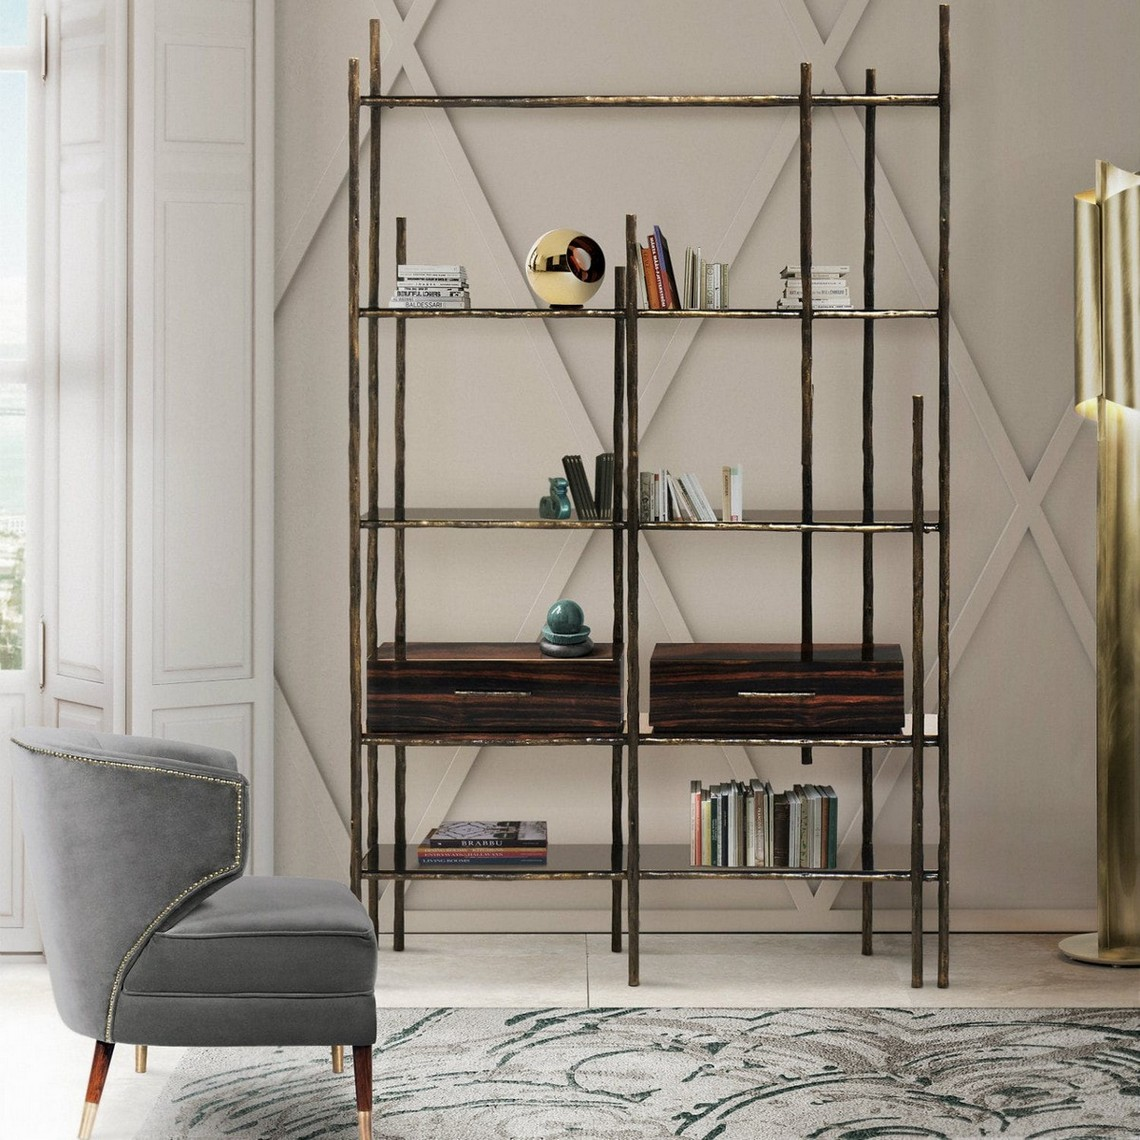 Amazing Contemporary Bookcases For Modern Ambiances contemporary bookcases Amazing Contemporary Bookcases For Modern Ambiances mambu